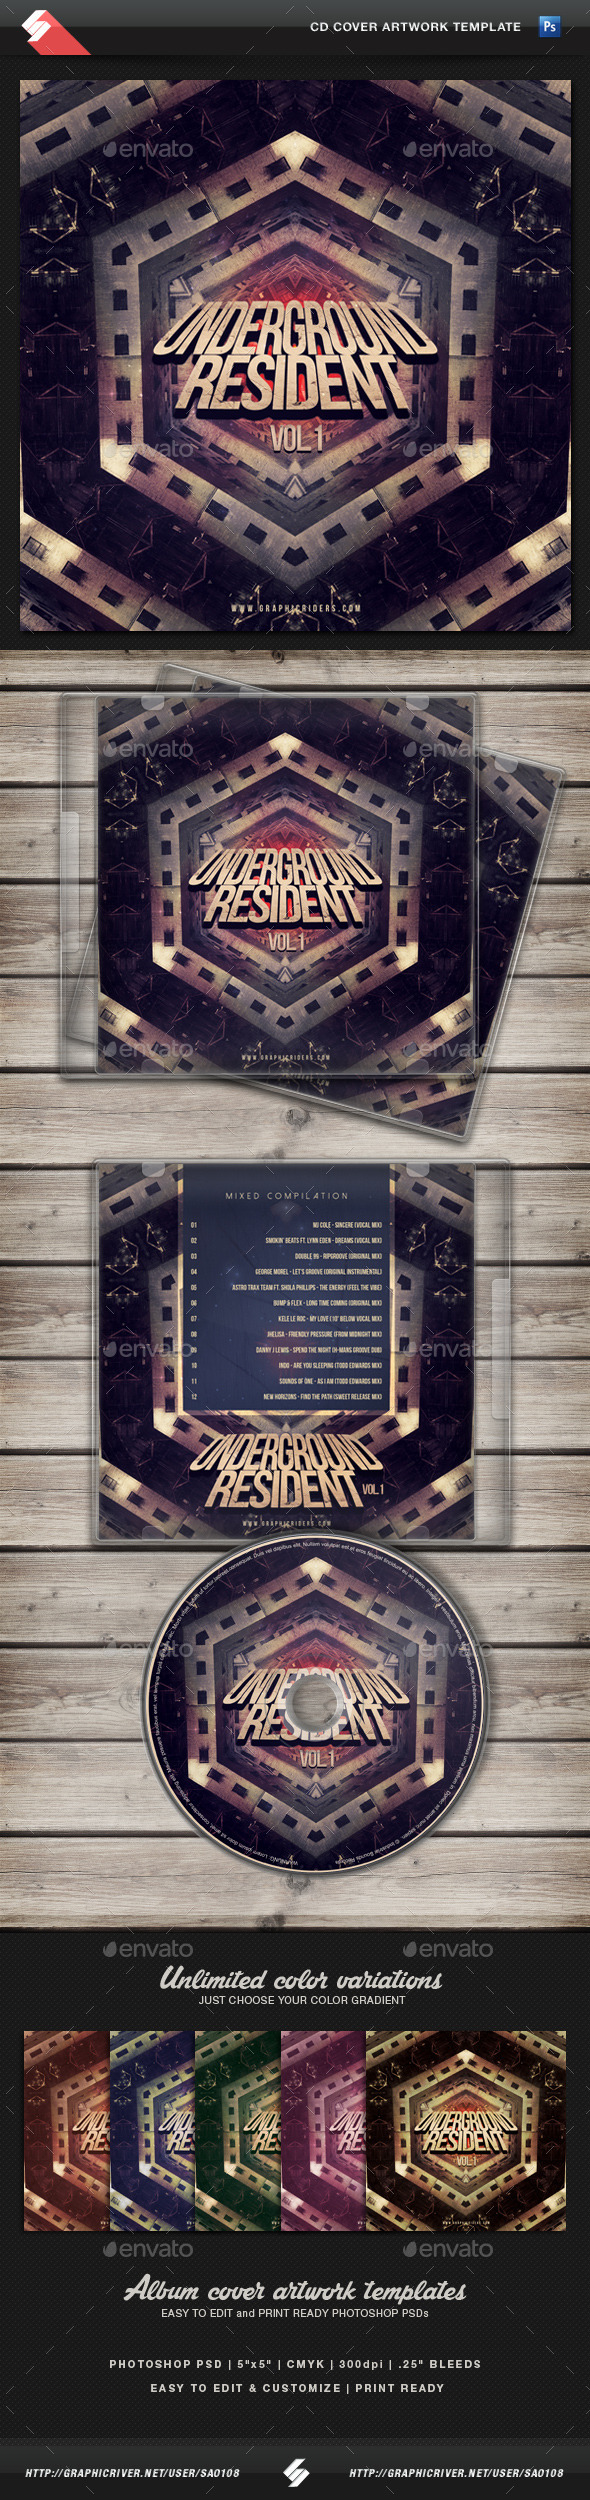 GraphicRiver Underground Resident vol.1 CD Cover Template 11320010